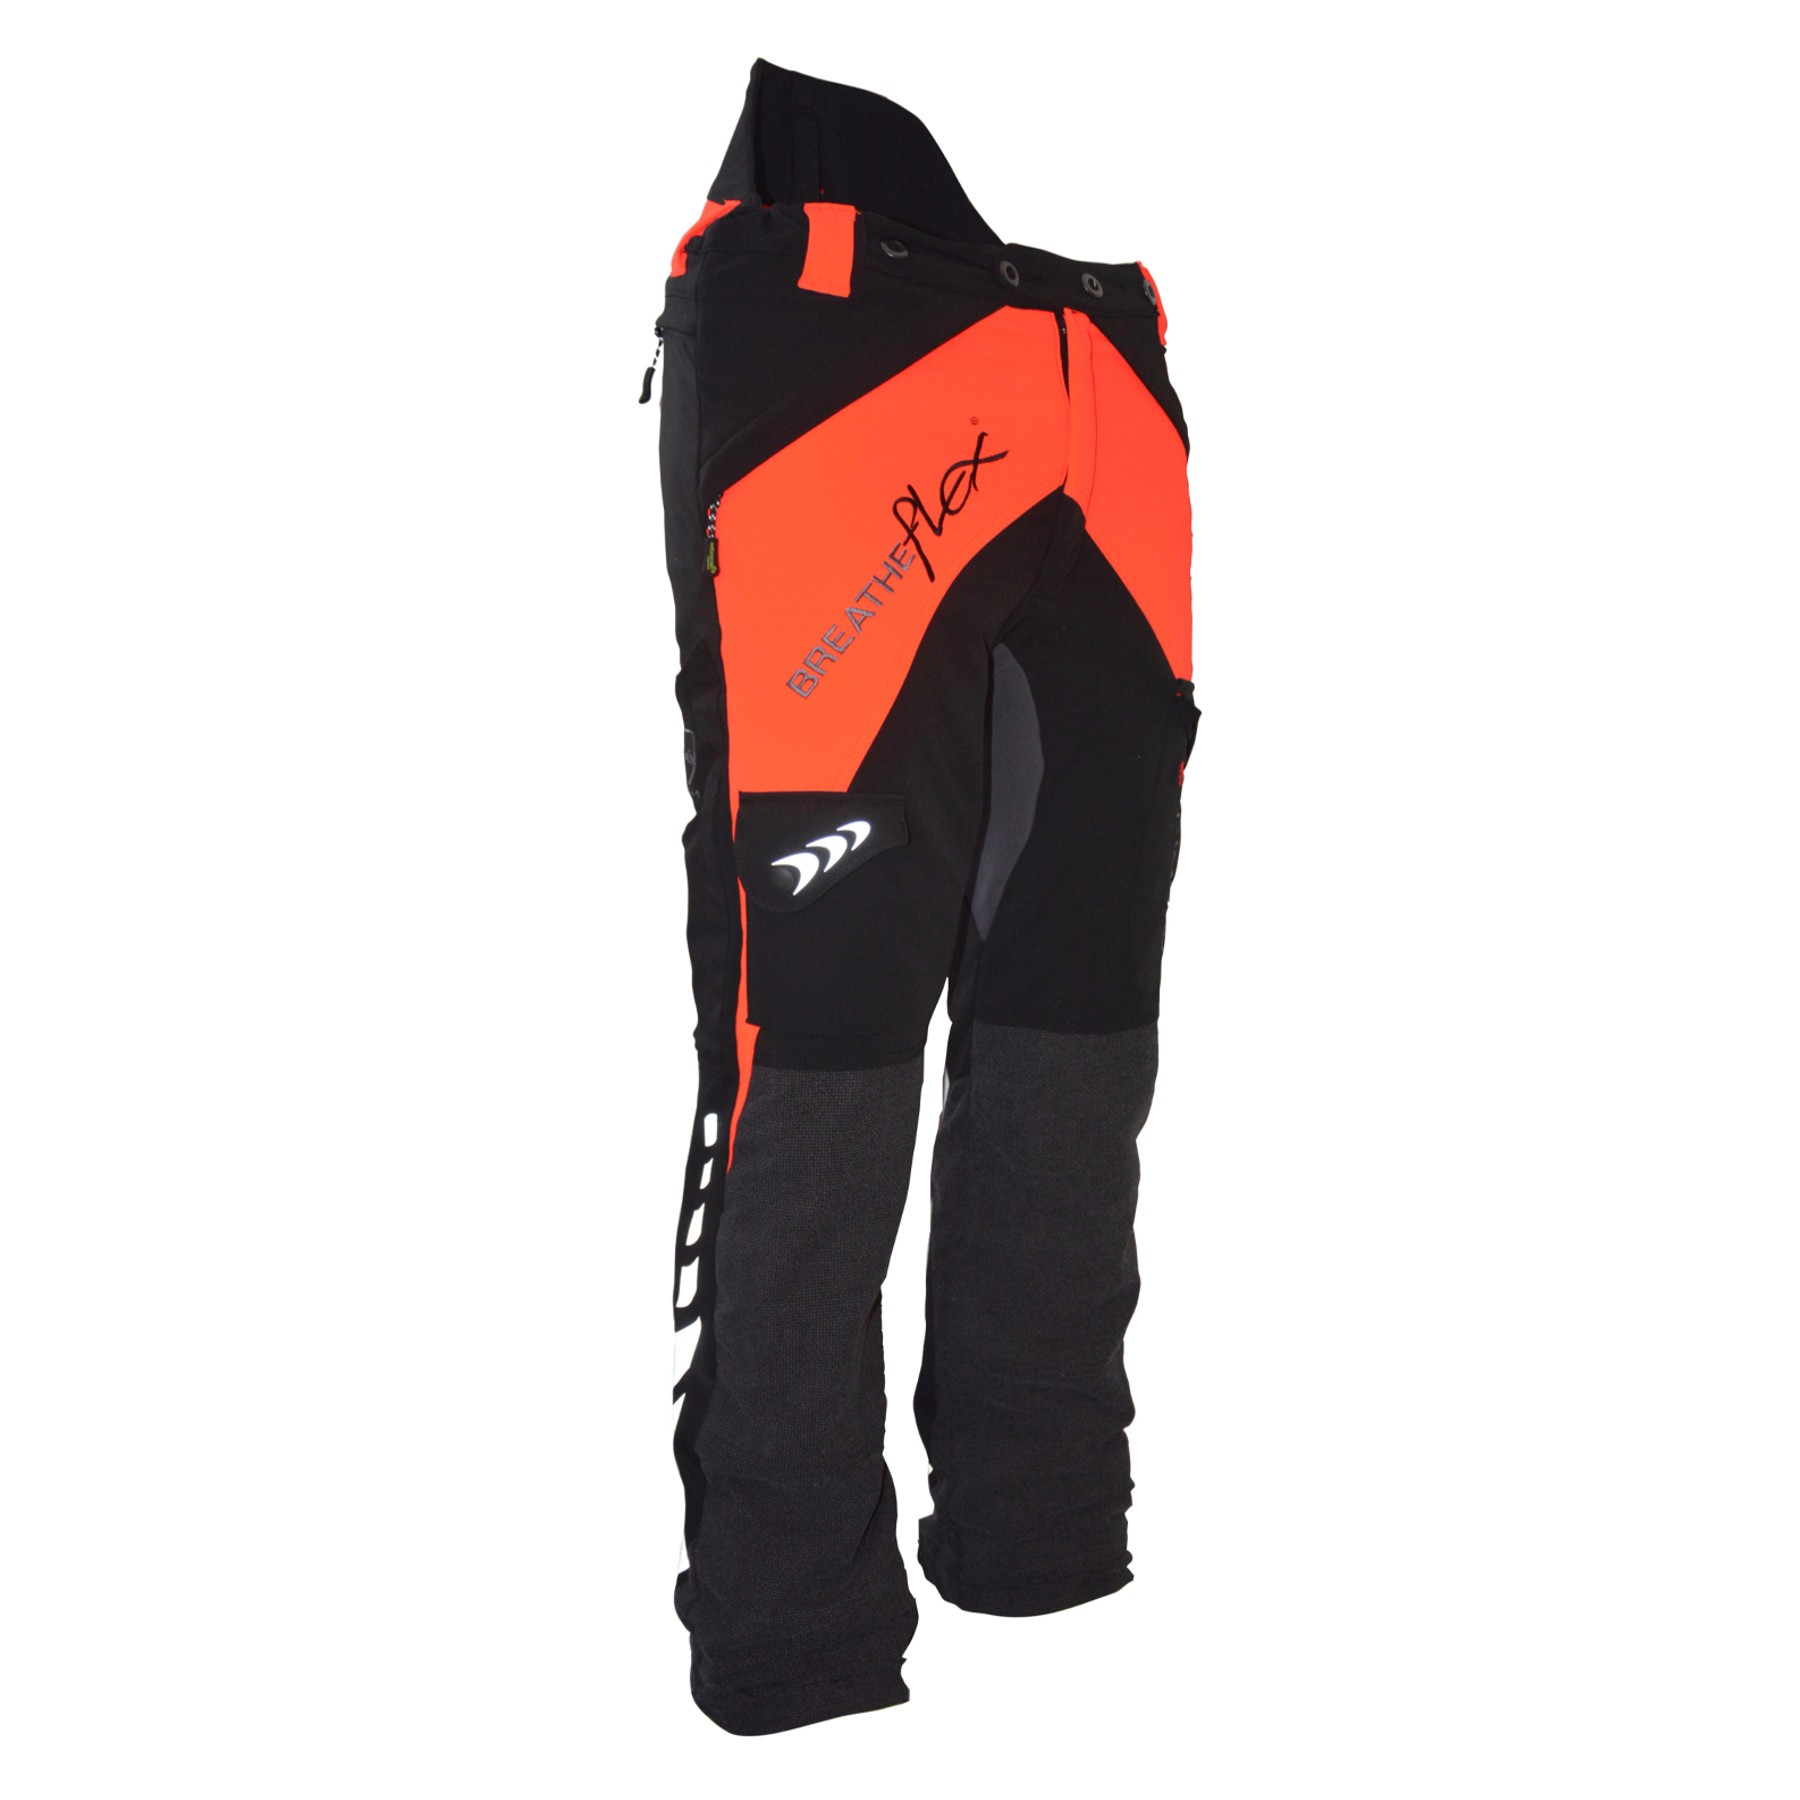 at4050-or/bk chainsaw trousers uhbnjix